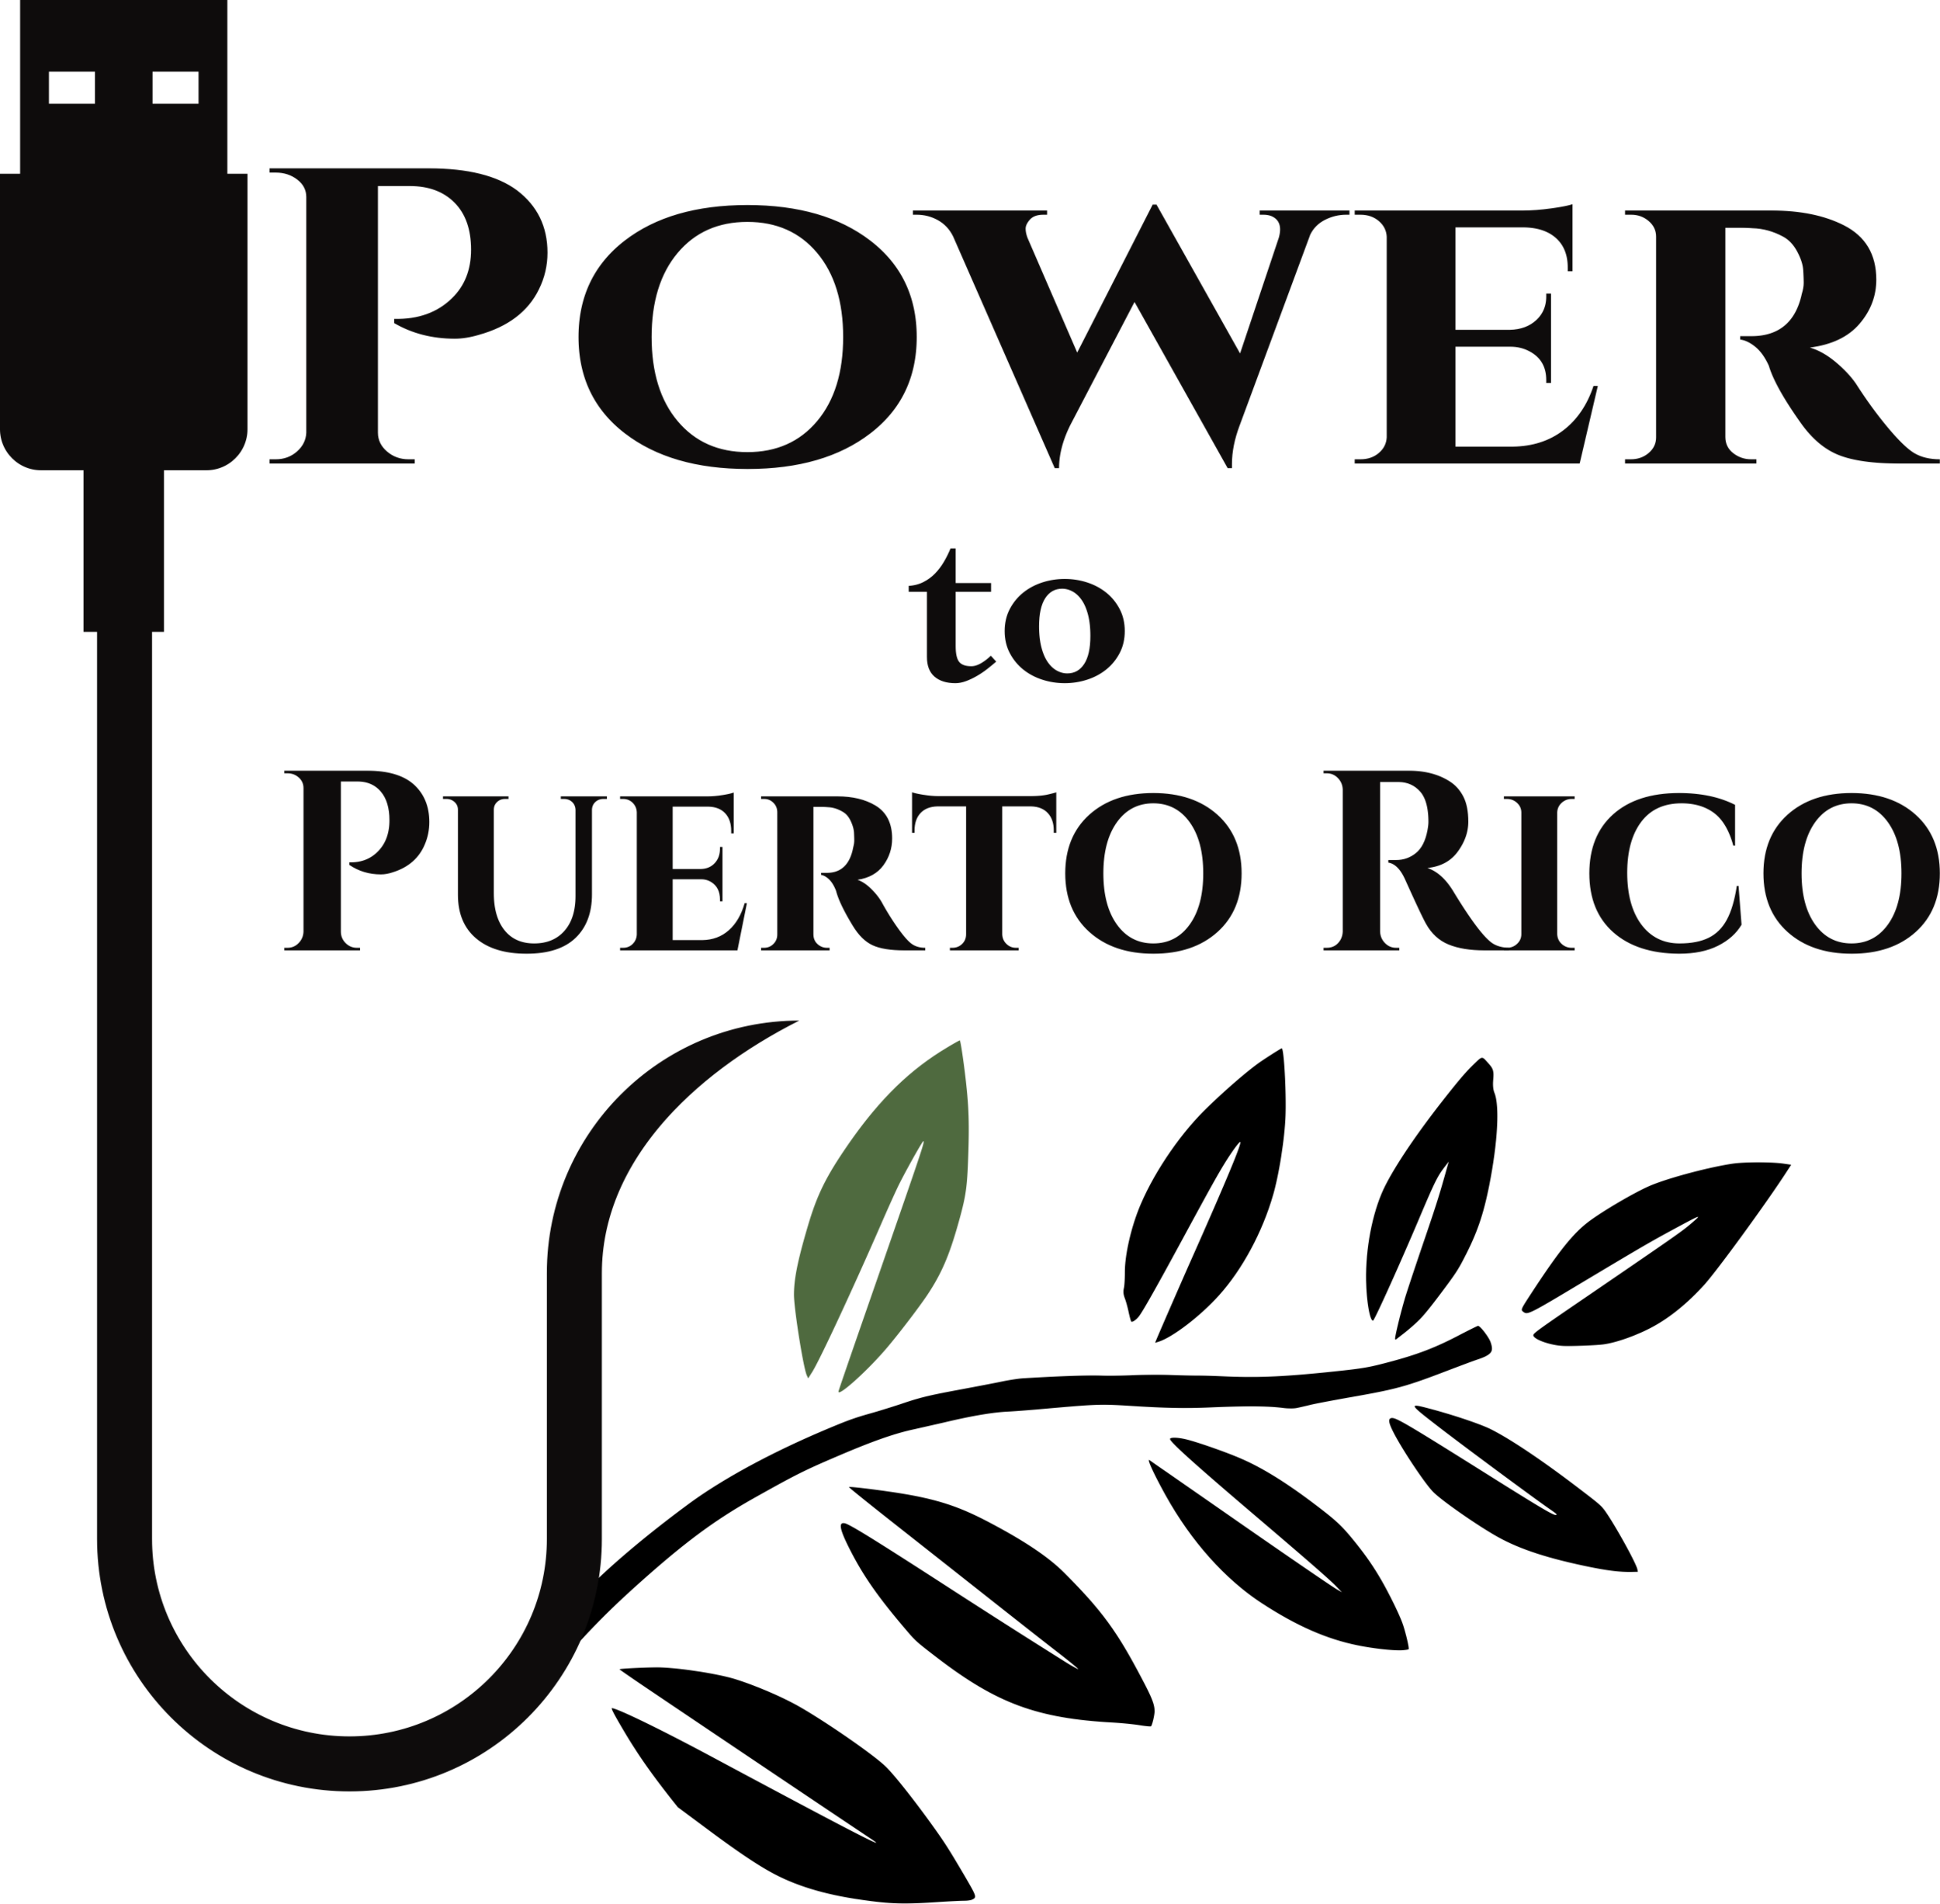 www.PowerToPuertoRico.org  - Power to Puerto Rico is a 501(c)3 non-profit dedicated to bringing renewable energy to Puerto Rico and the Caribbean.